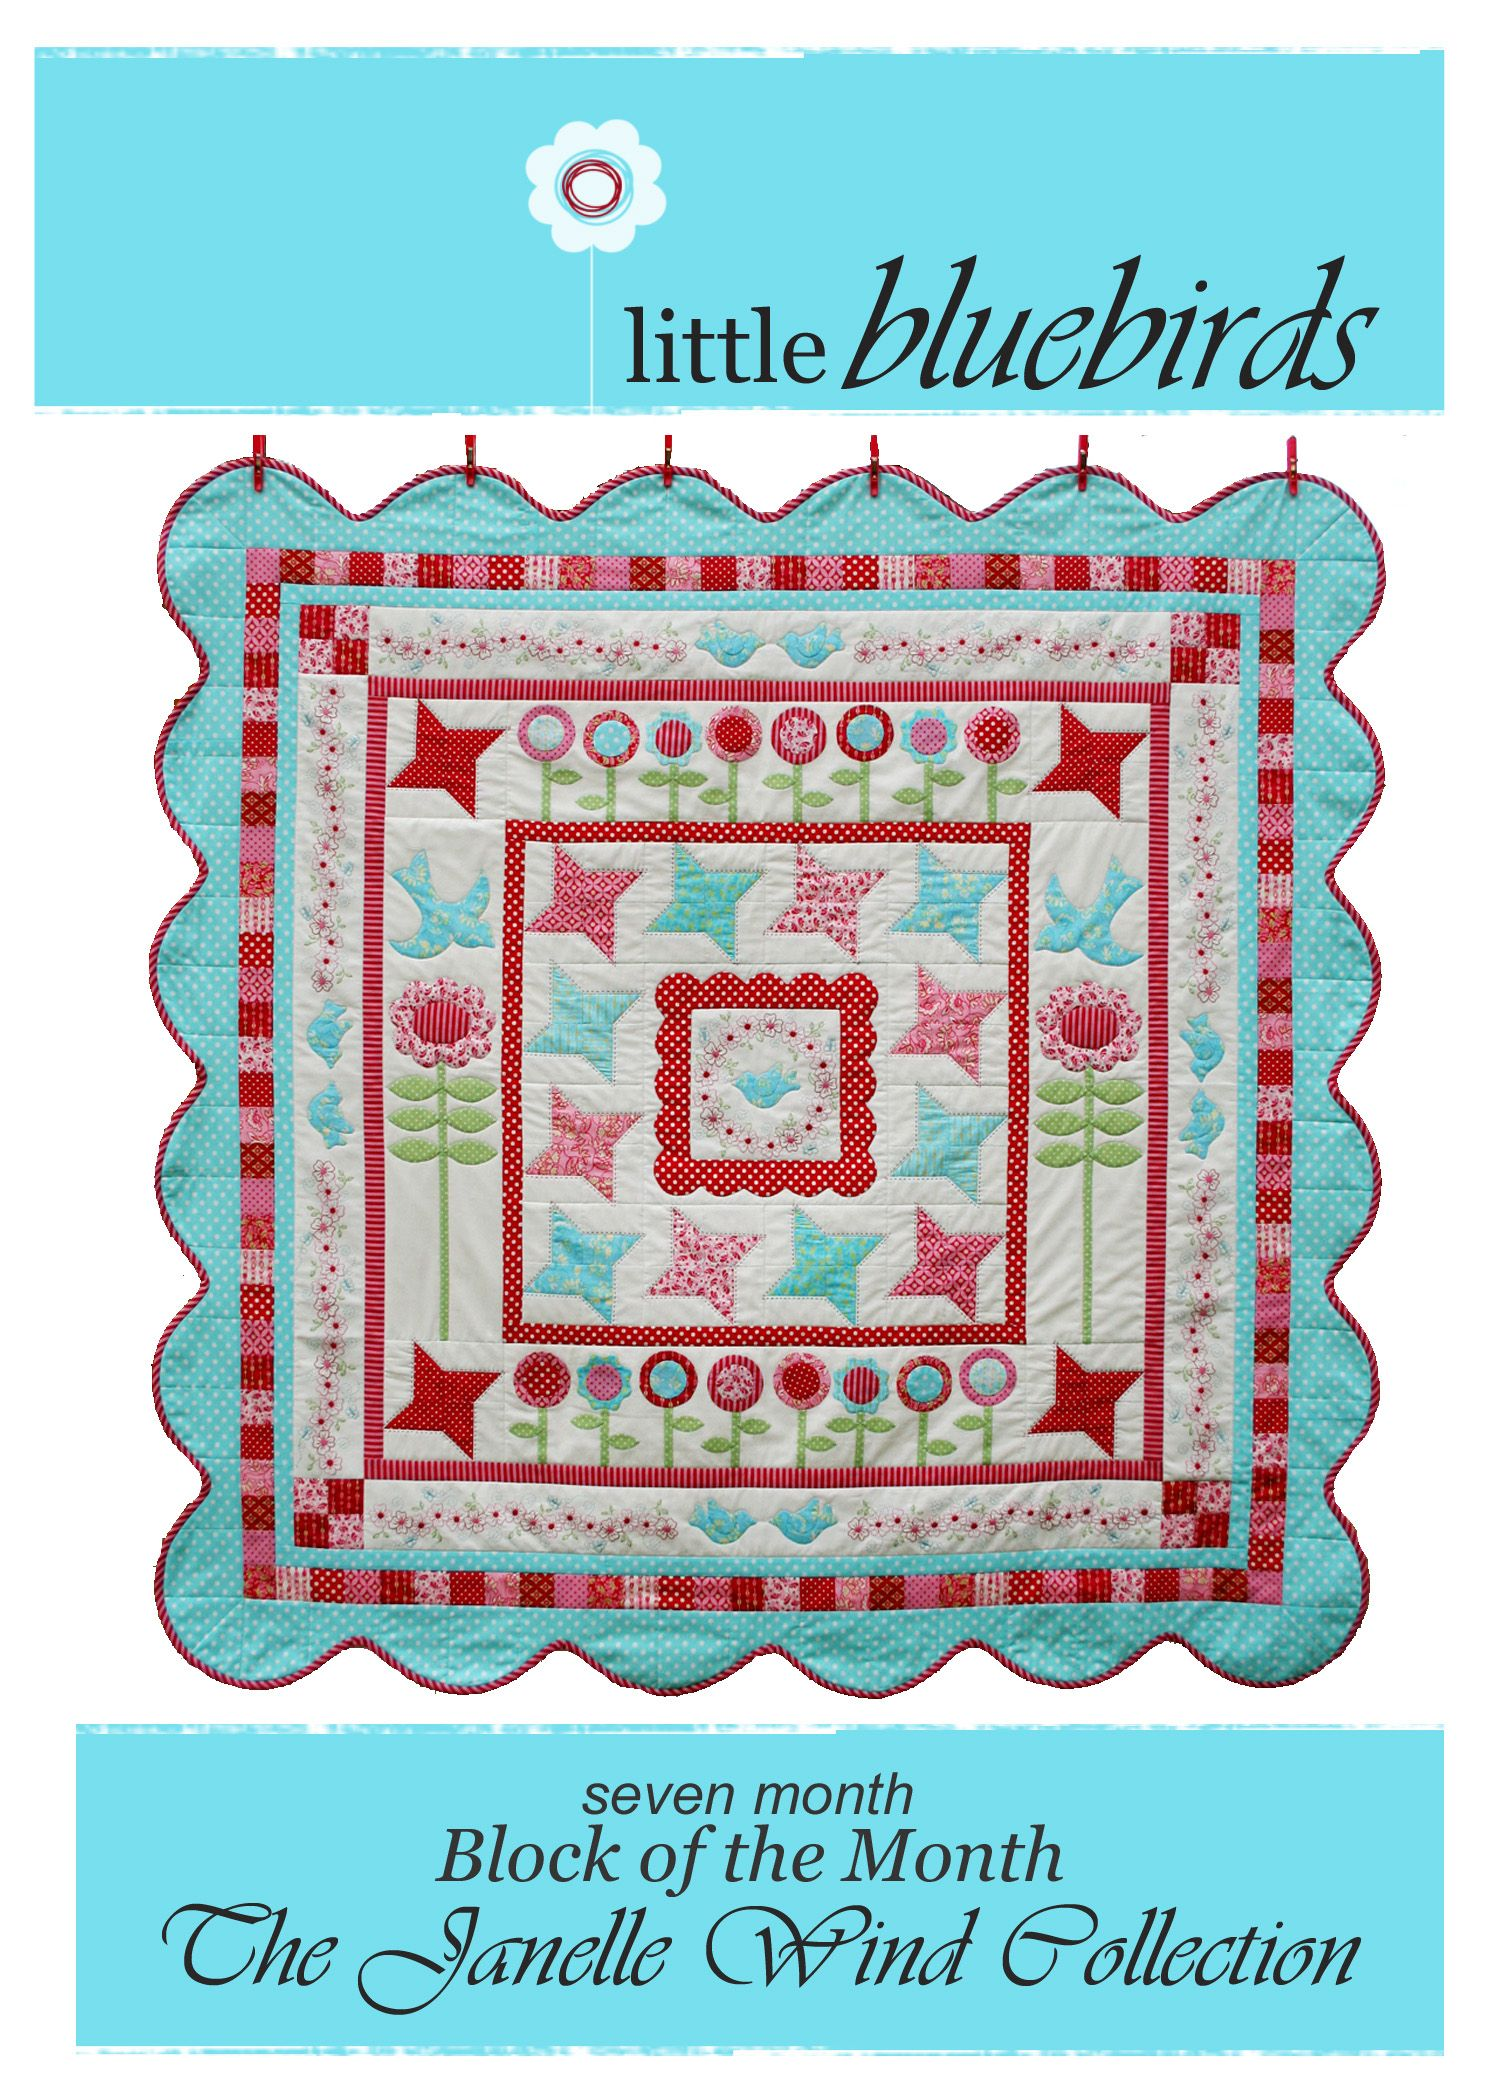 Google Image Result for http://s3.media.squarespace.com/production/510399/5927218/quilt_fabric_delights/janelleFLYERphotoshopCOPY.jpg